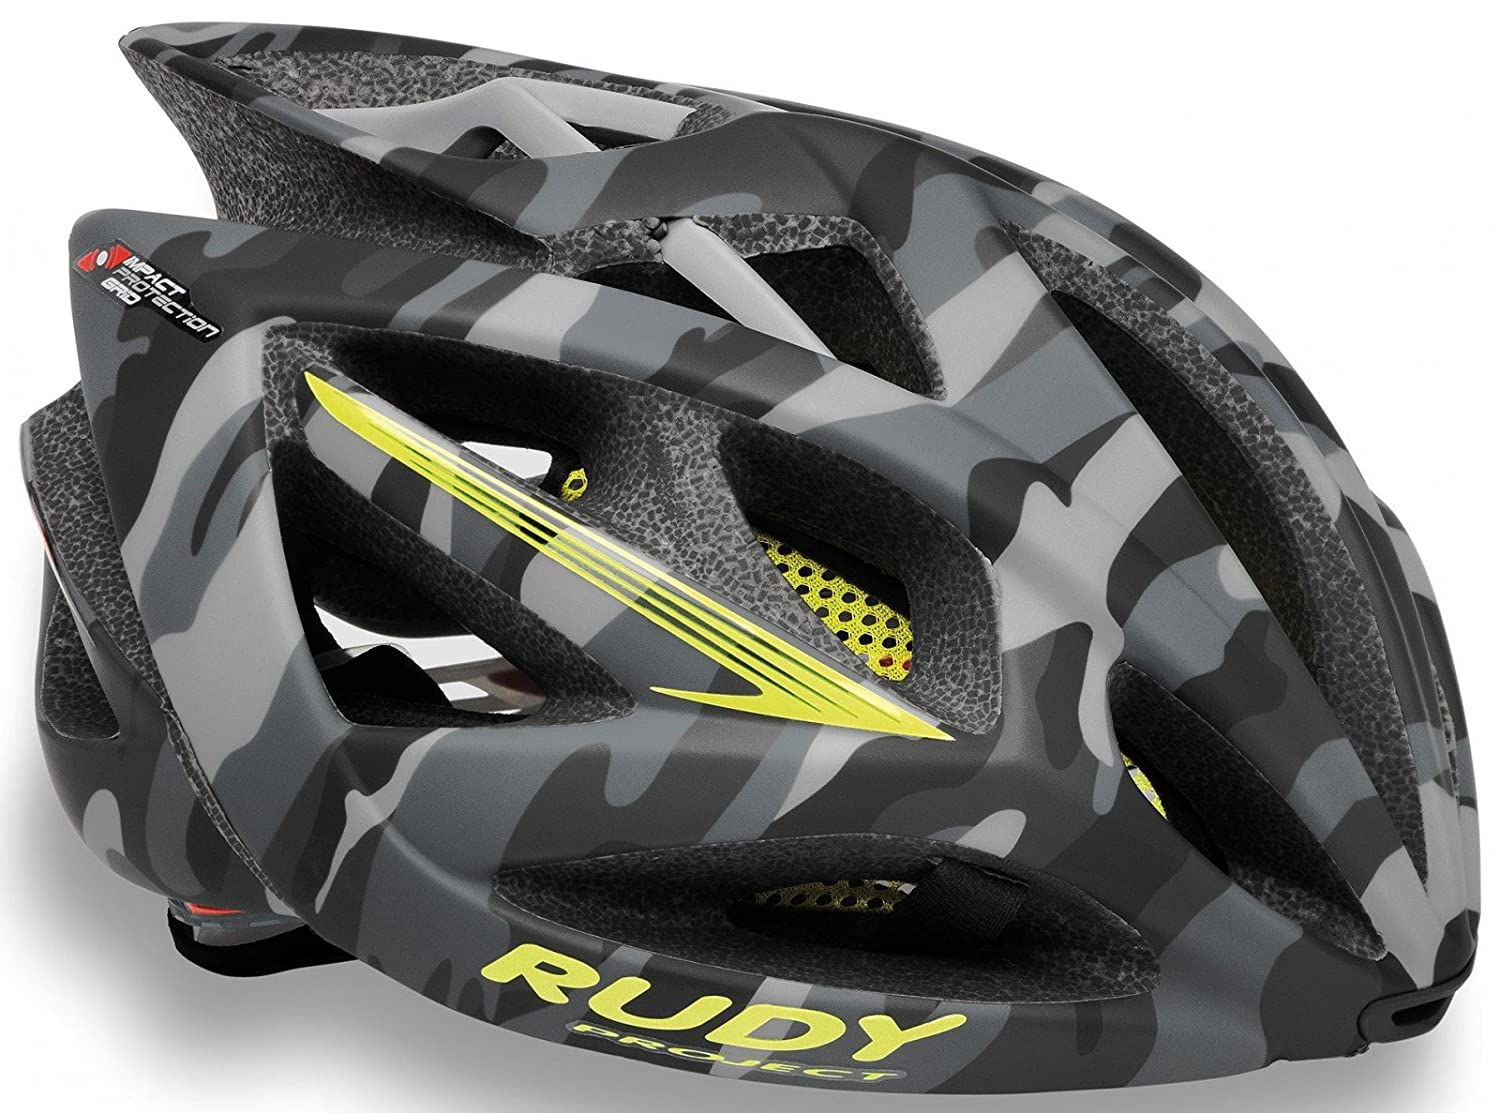 Rudy Project Airstrom Casco Ciclismo, Unisex Adulto: Amazon.es ...